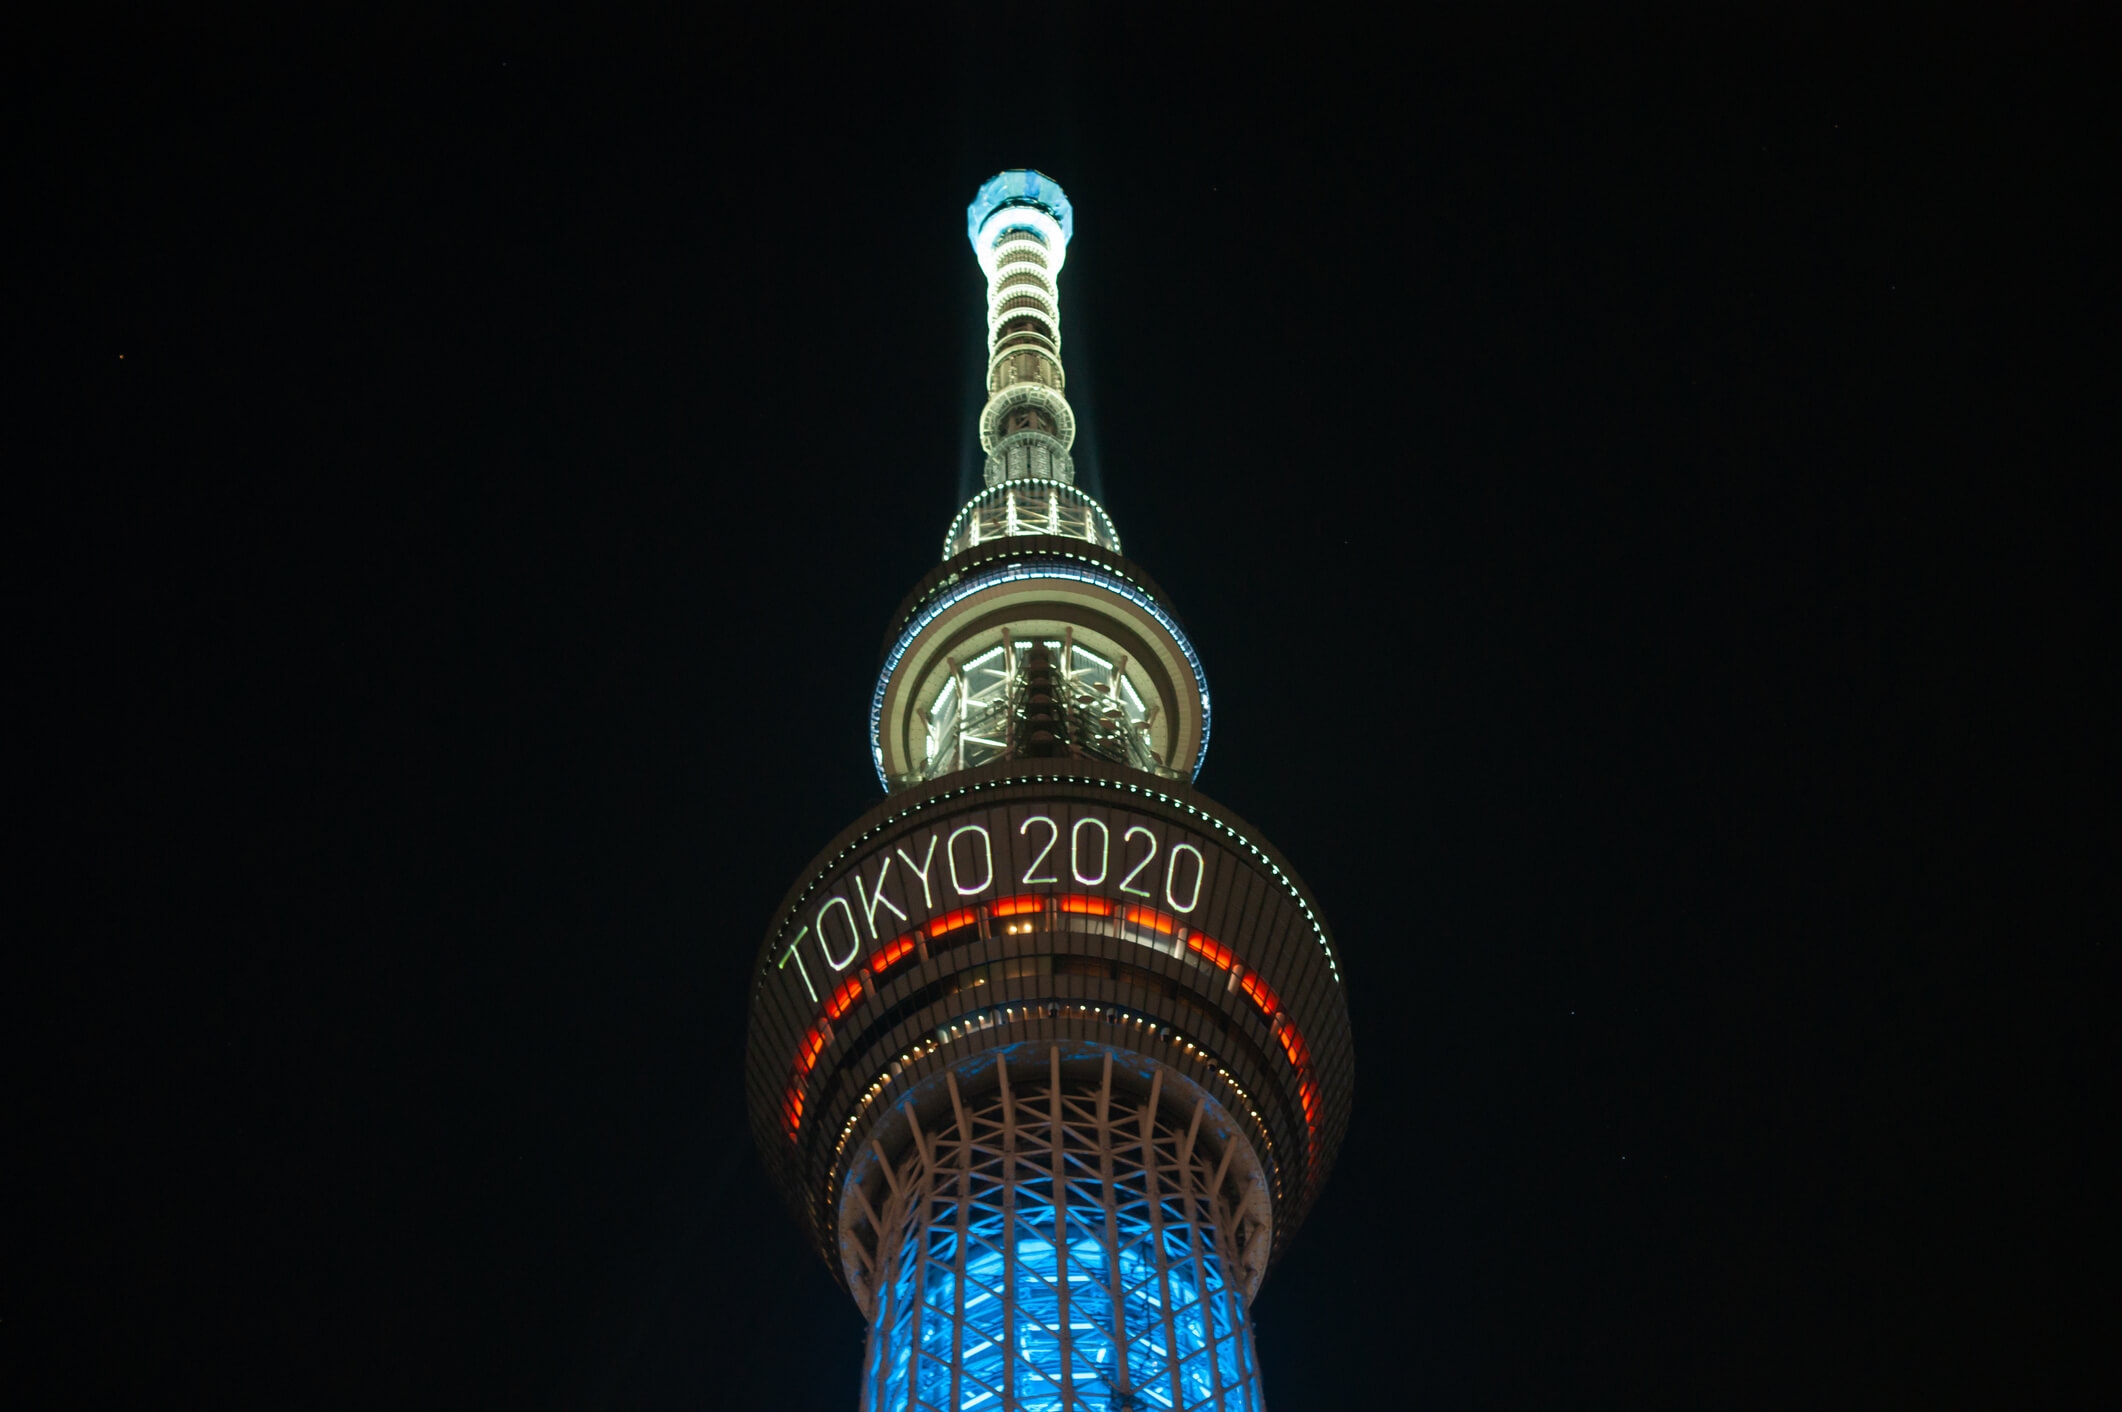 Skytree tower with Tokyo 2020 sign